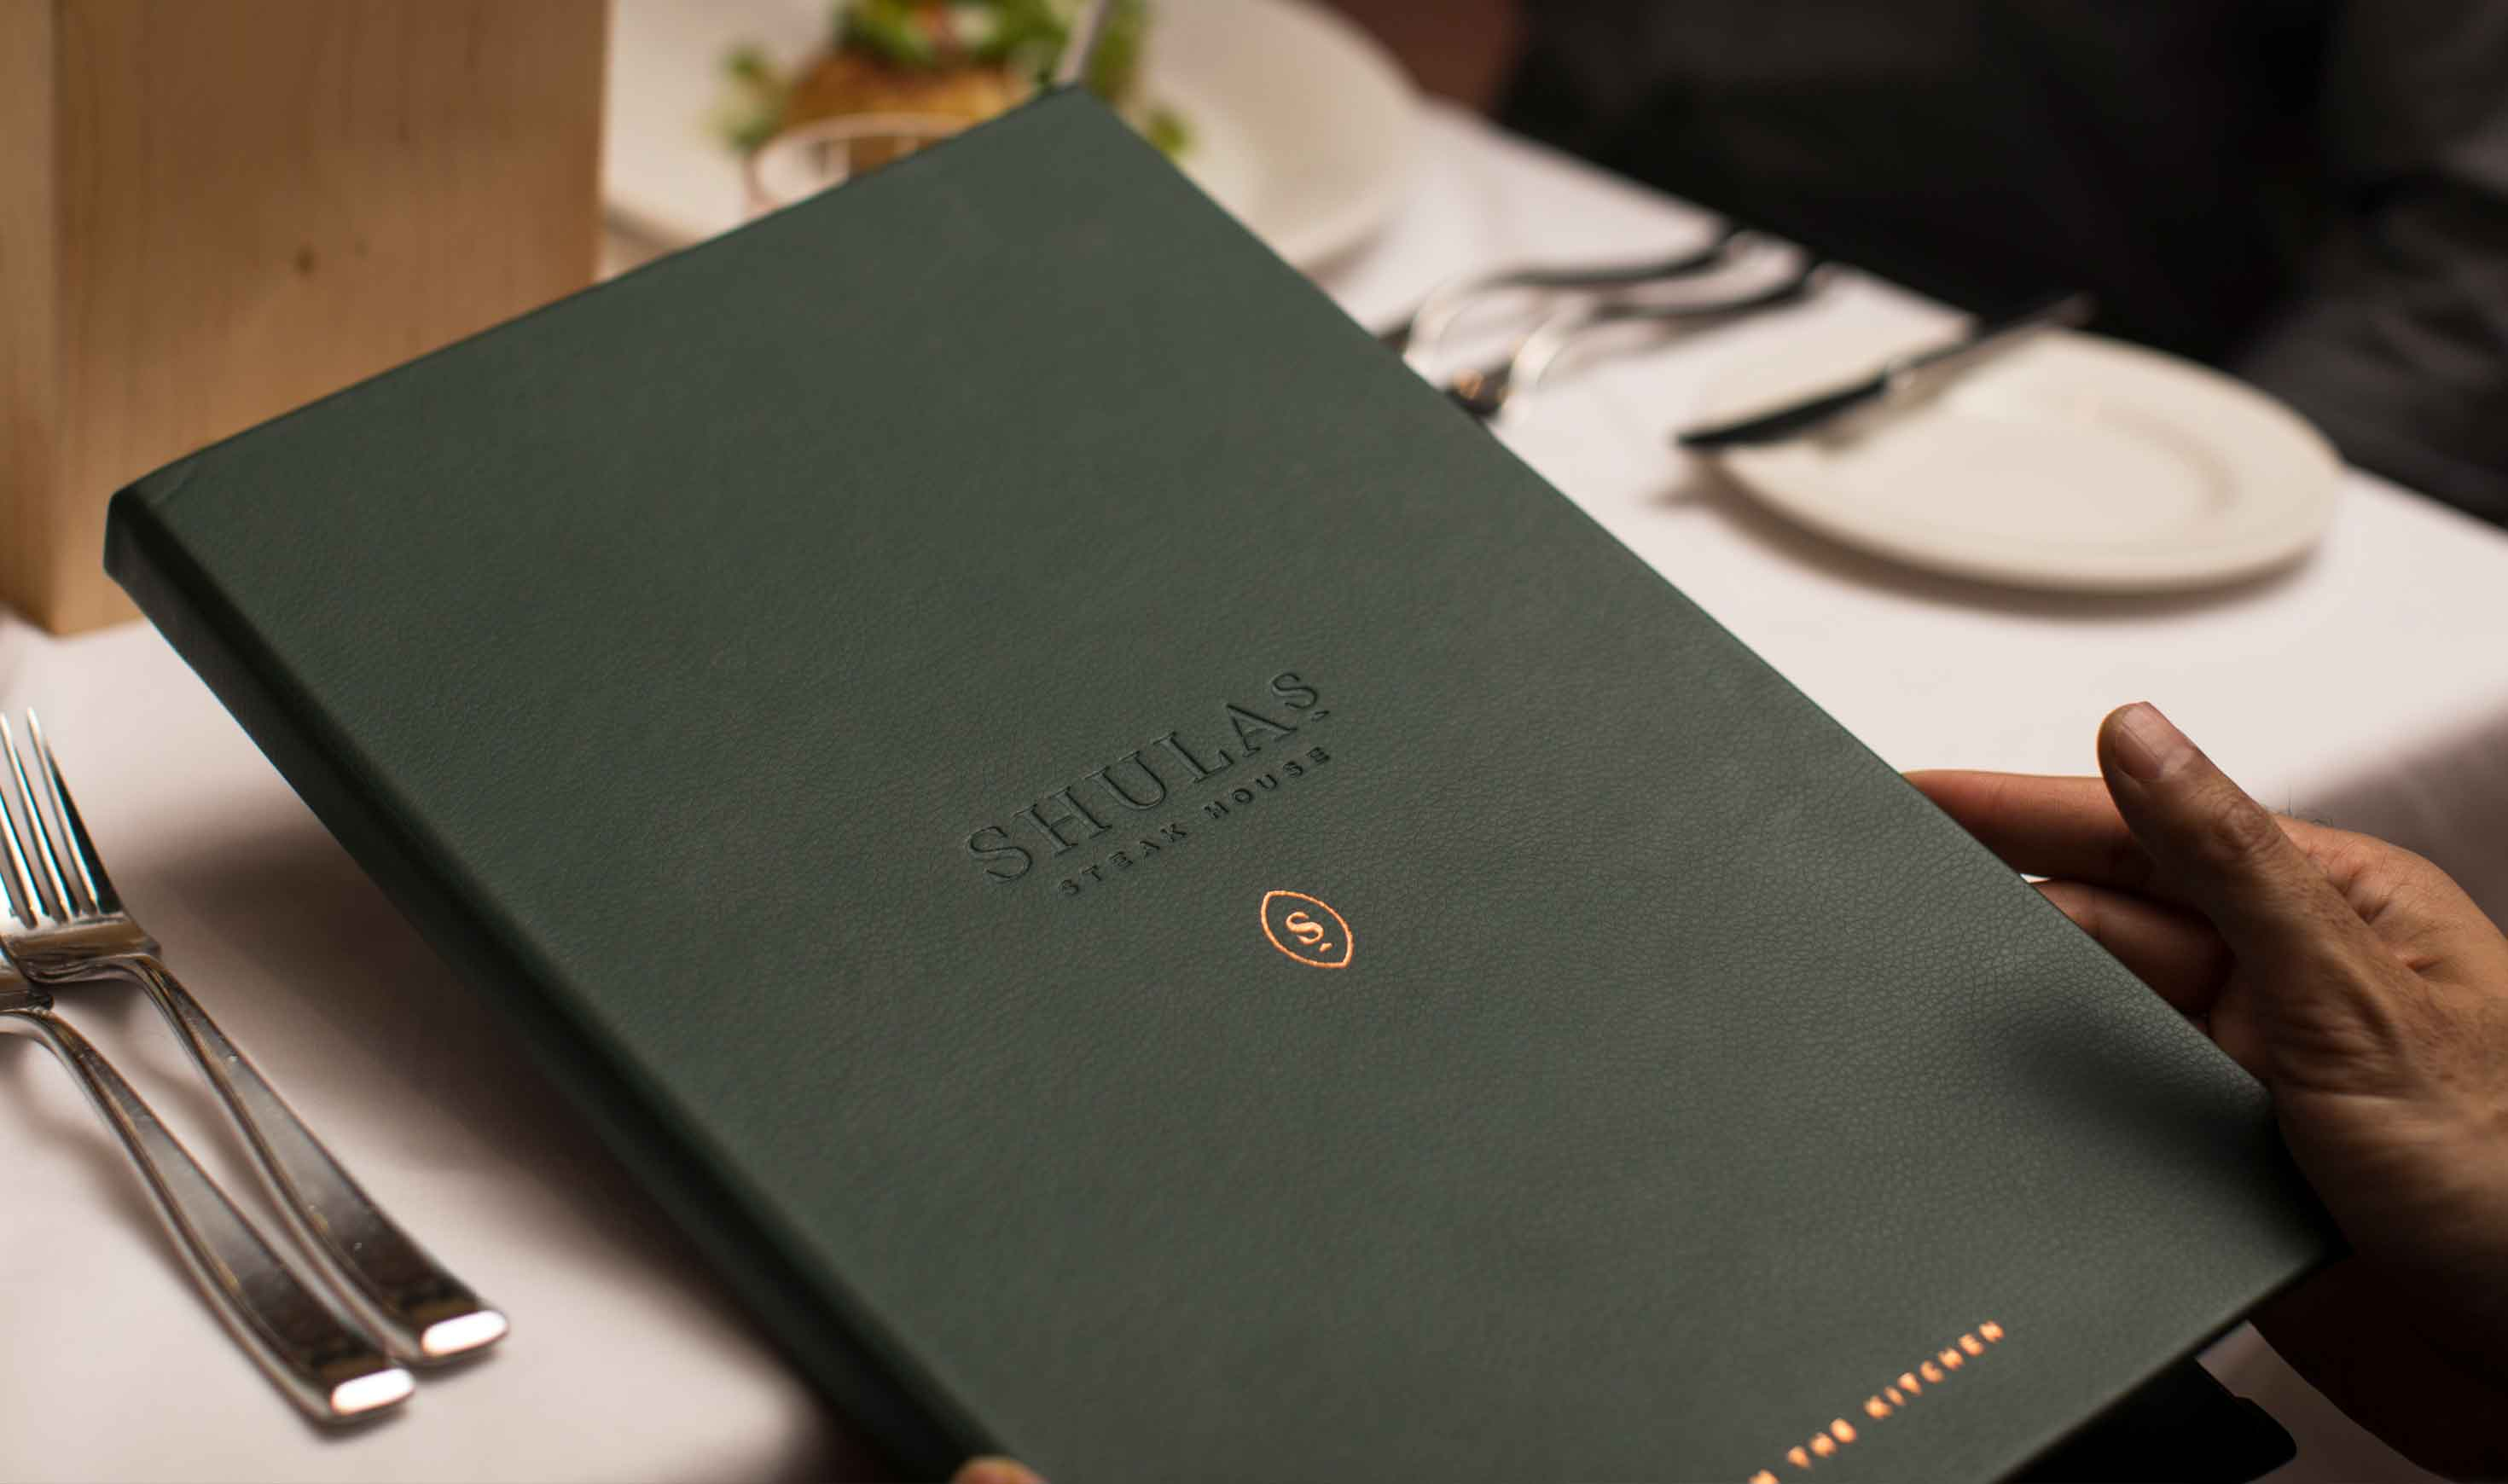 Man at restaurant table holding Shula's Steak House menu, showing debossed, foil-stamped cover